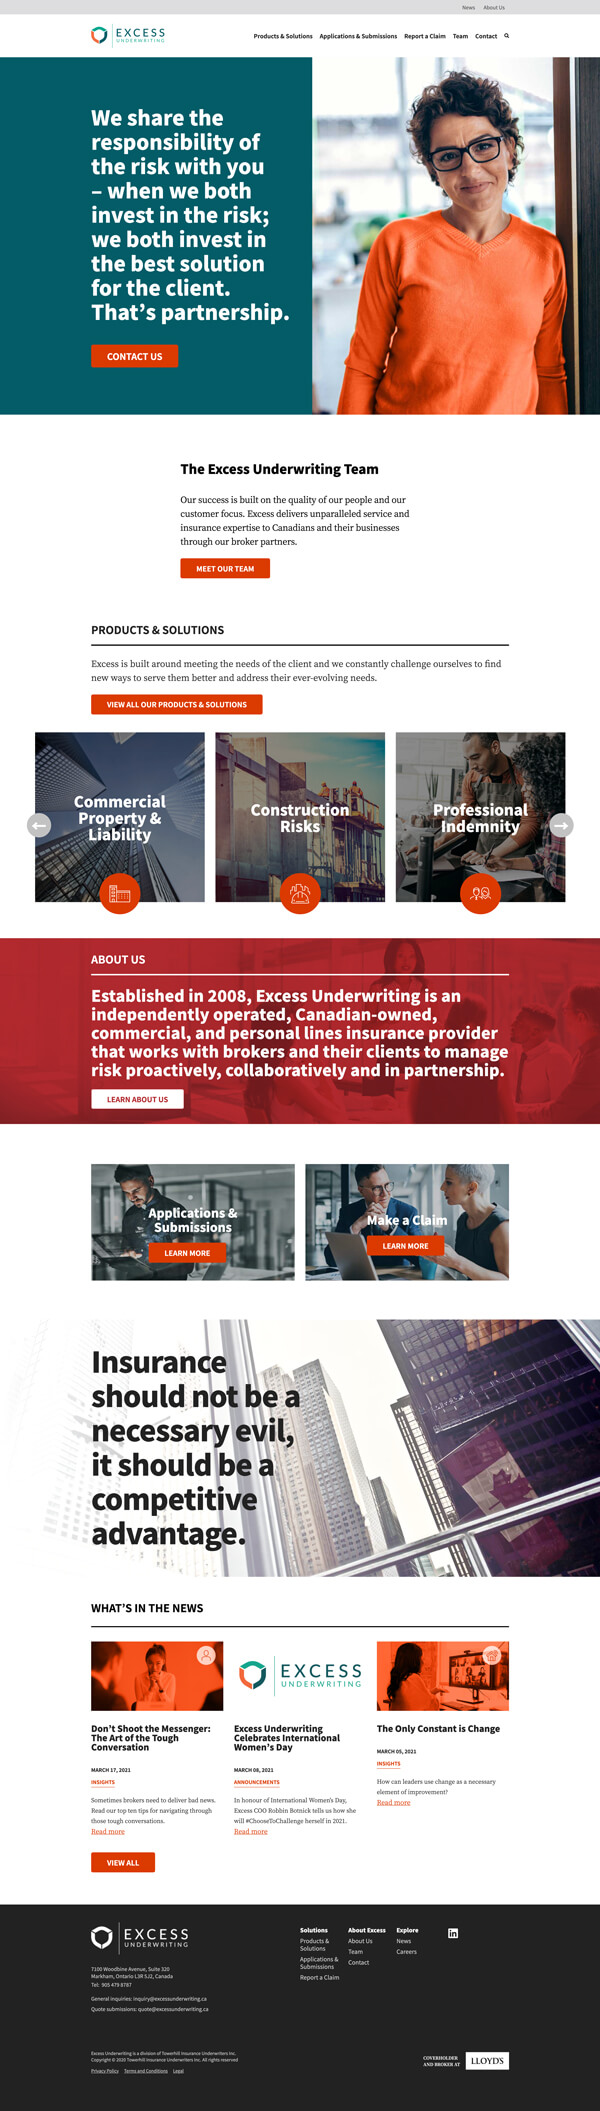 Excess website home page